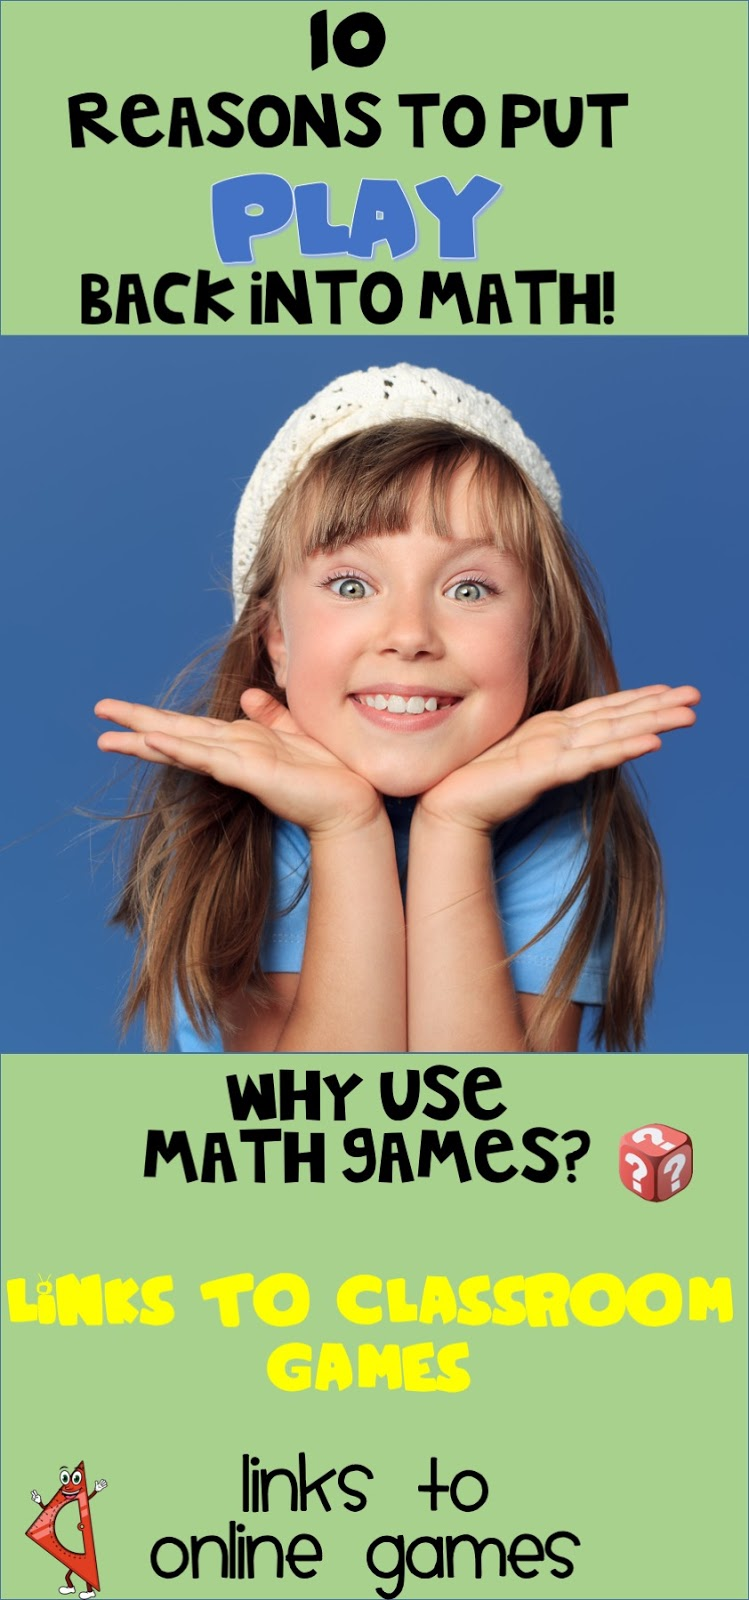 Dragon's Den Curriculum: 10 Reasons to Put PLAY Back into Math